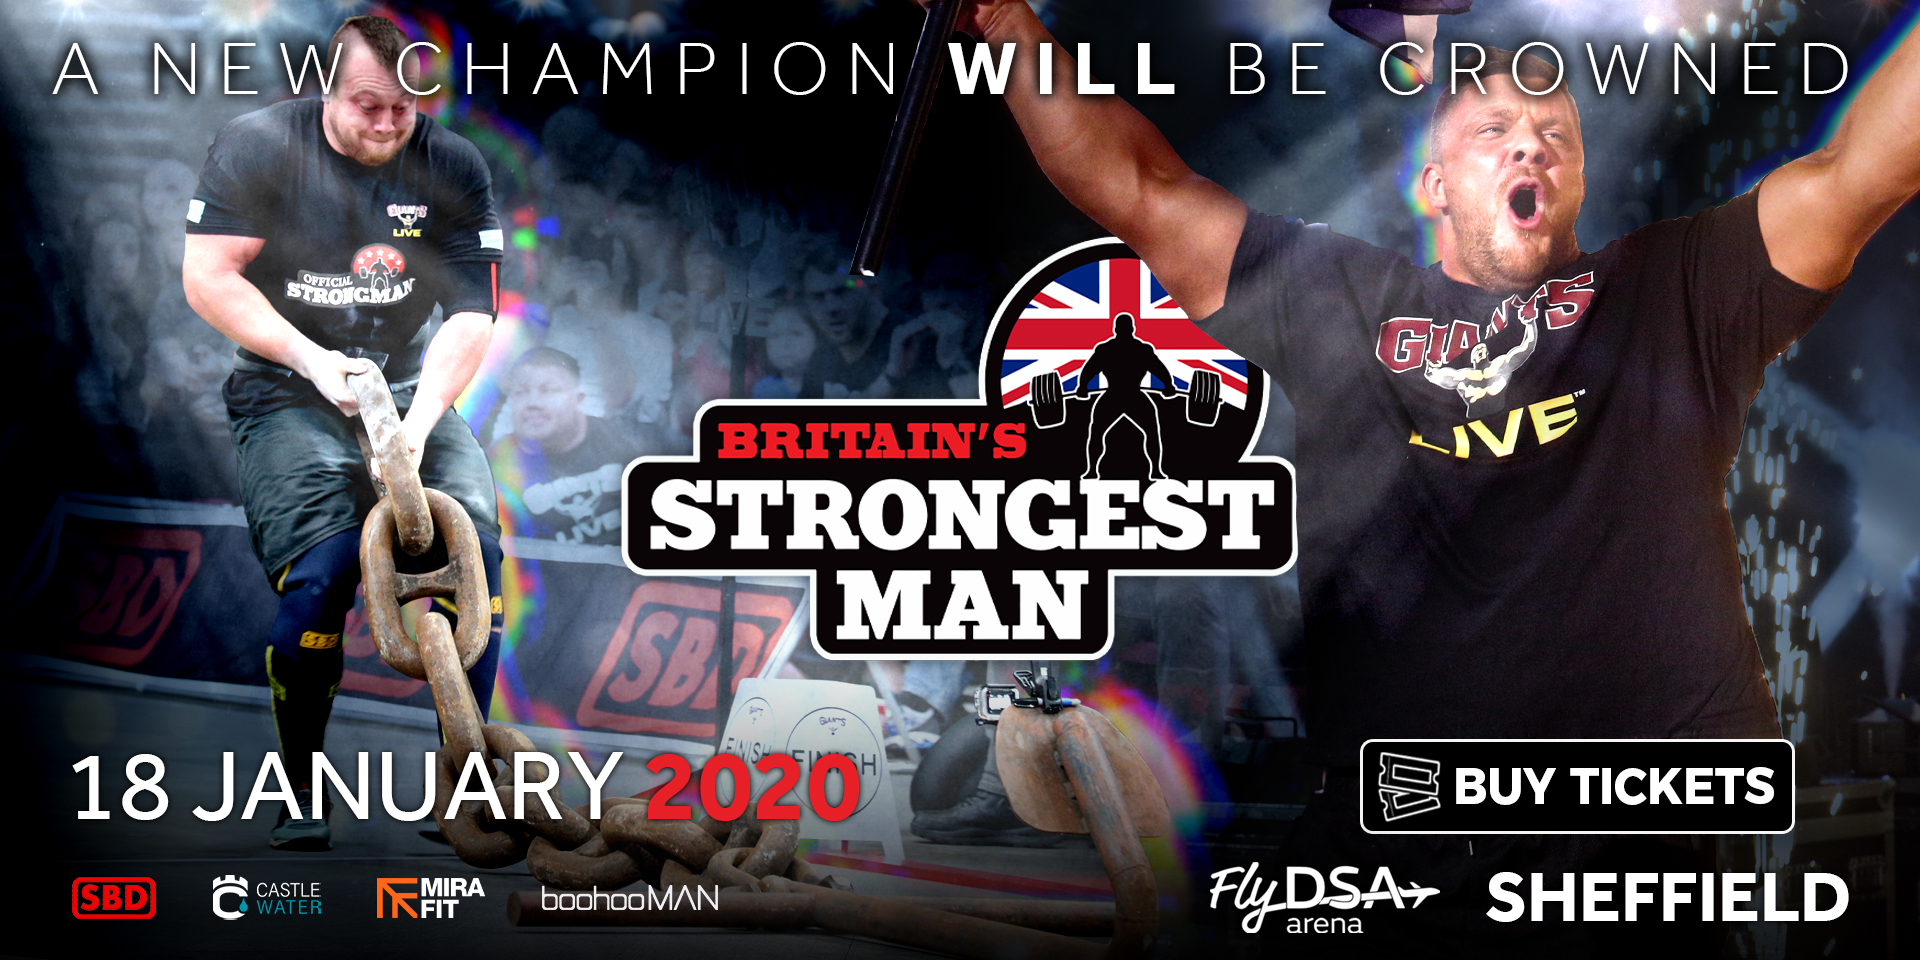 The greatest Strongmen in Britain come to the city of STEEL for Britain's Strongest Man 2020 at FlyDSA Arena Sheffield!